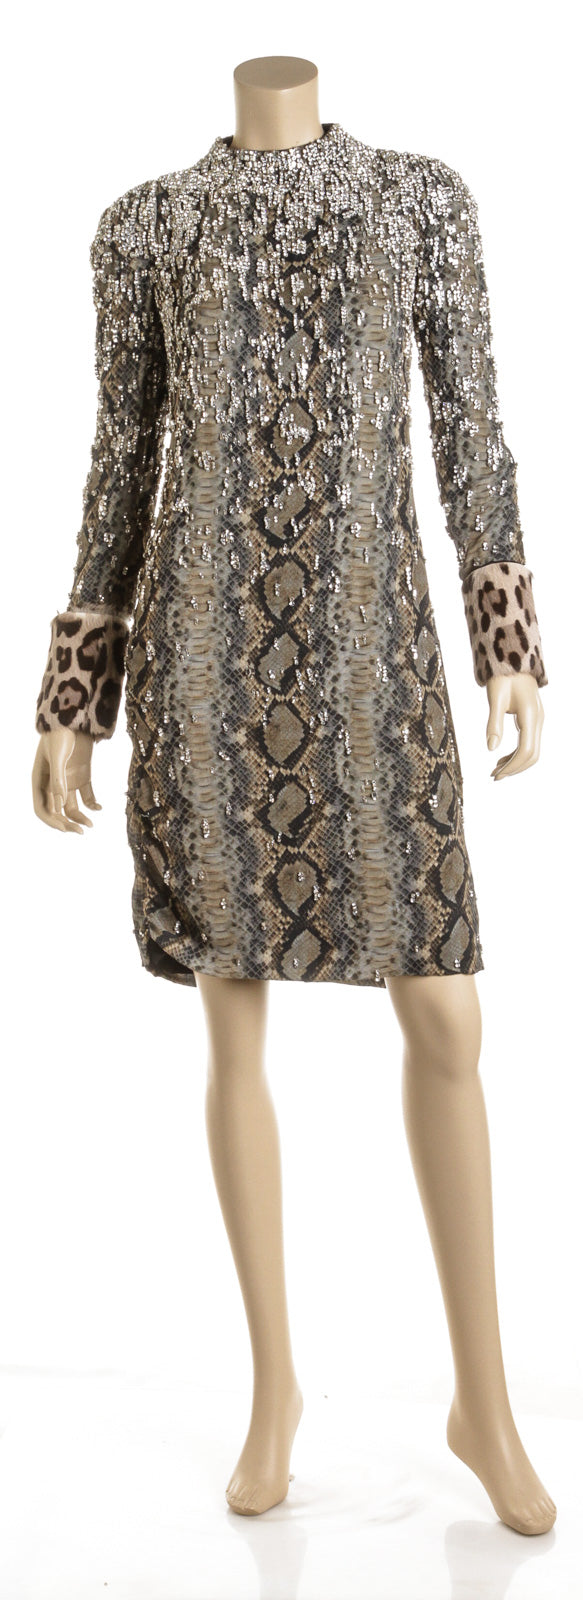 Tom Ford Gray Silk Snake Print and Crystal Encrusted, Leopard Cuff Dress (Size 38)